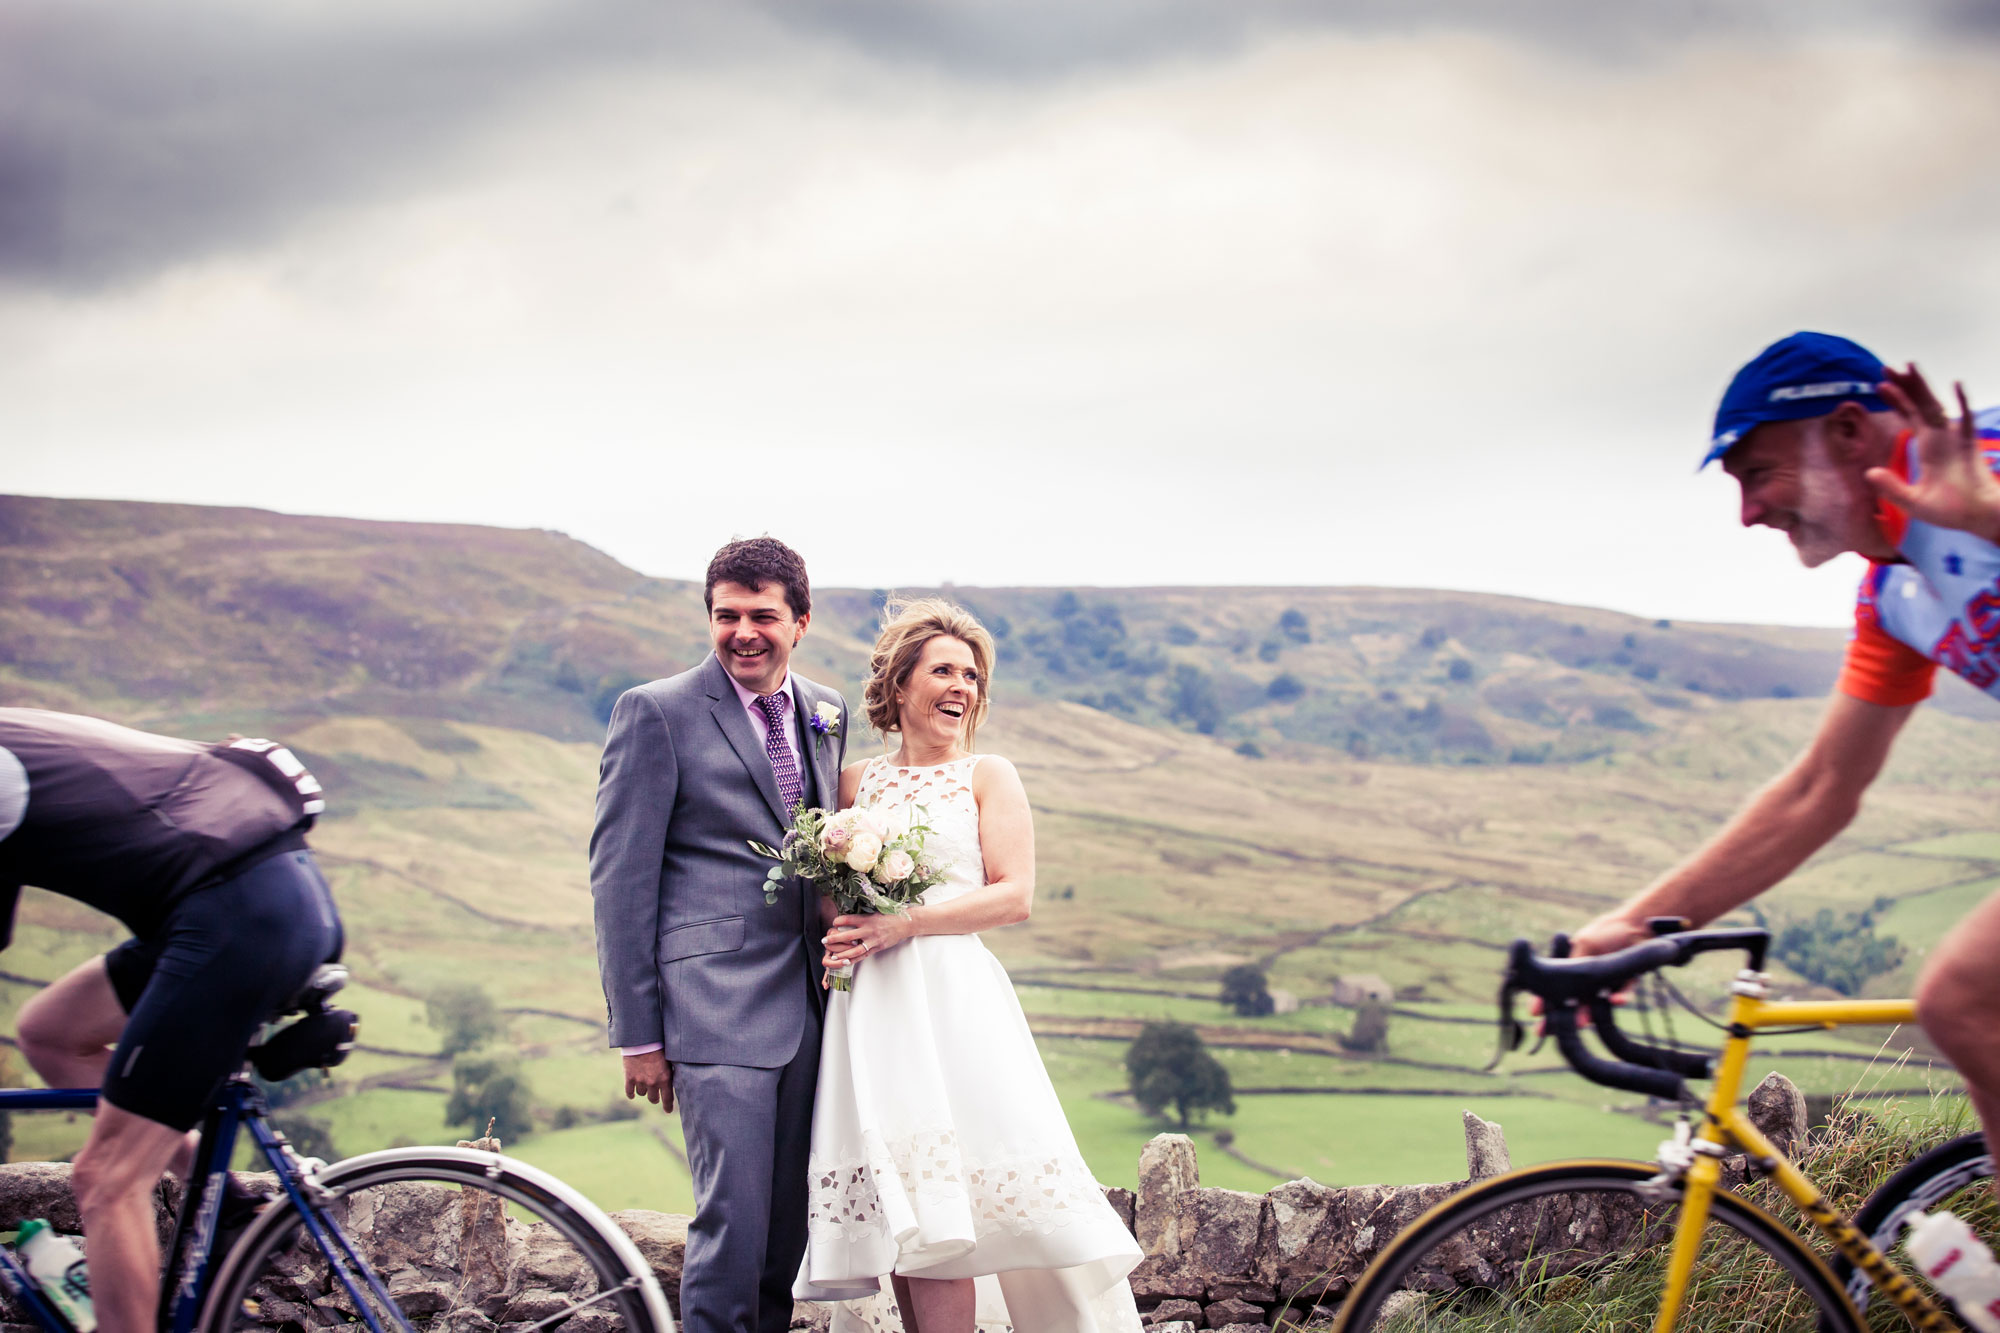 wedding-photgraphy-by-kathryn-yorkshire-skipton-leeds-ilkley-harrogate-york-approach-6